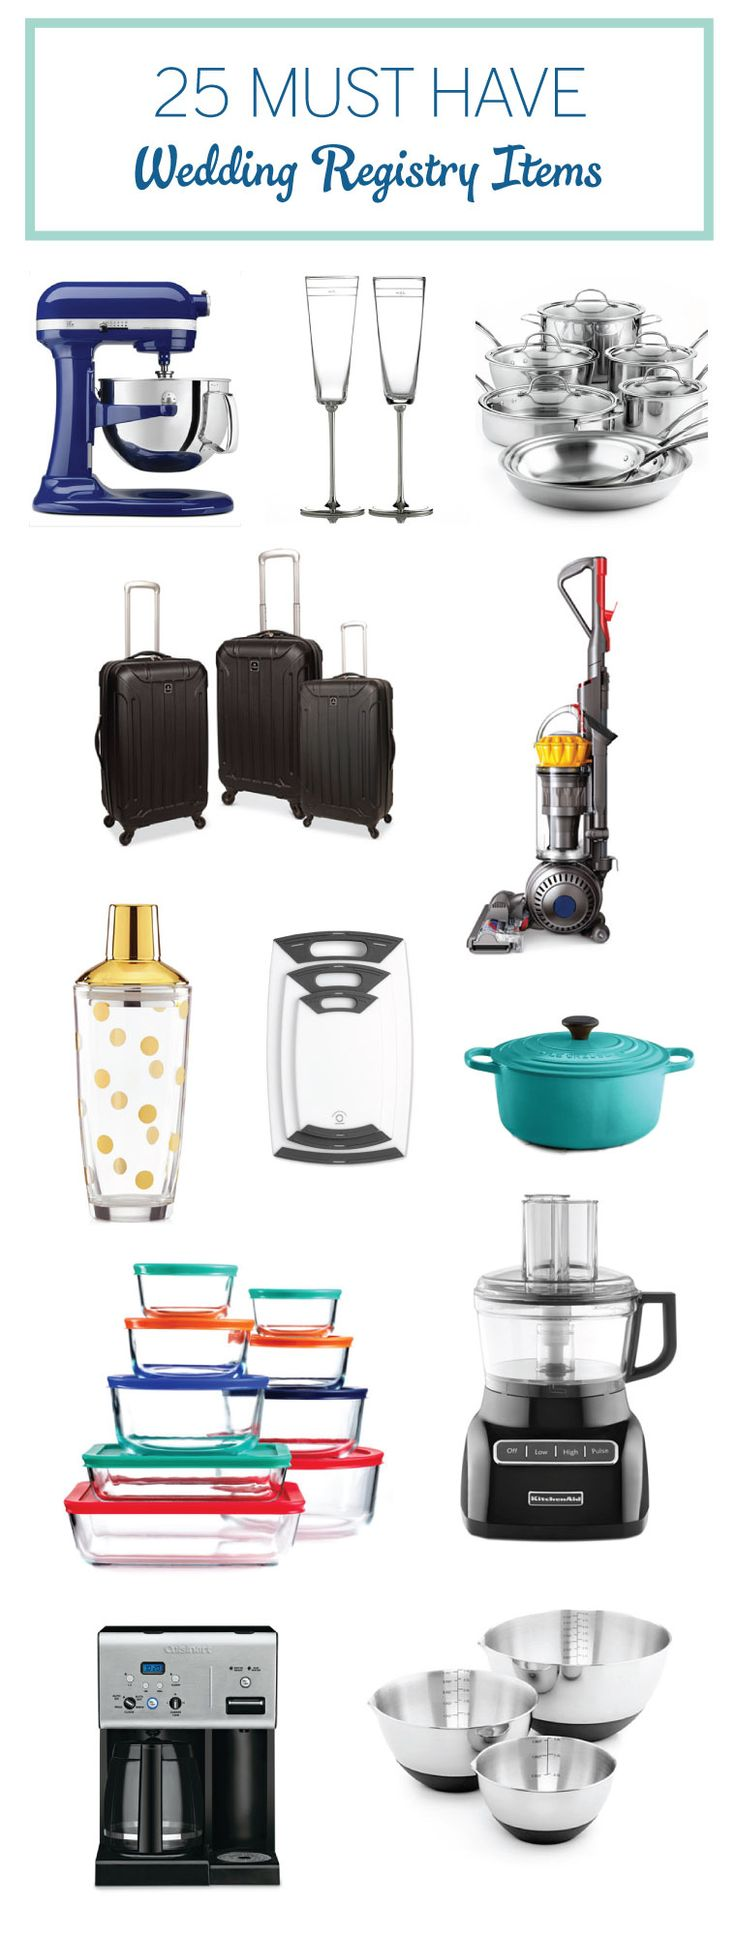 25 Must Have Wedding Registry Items